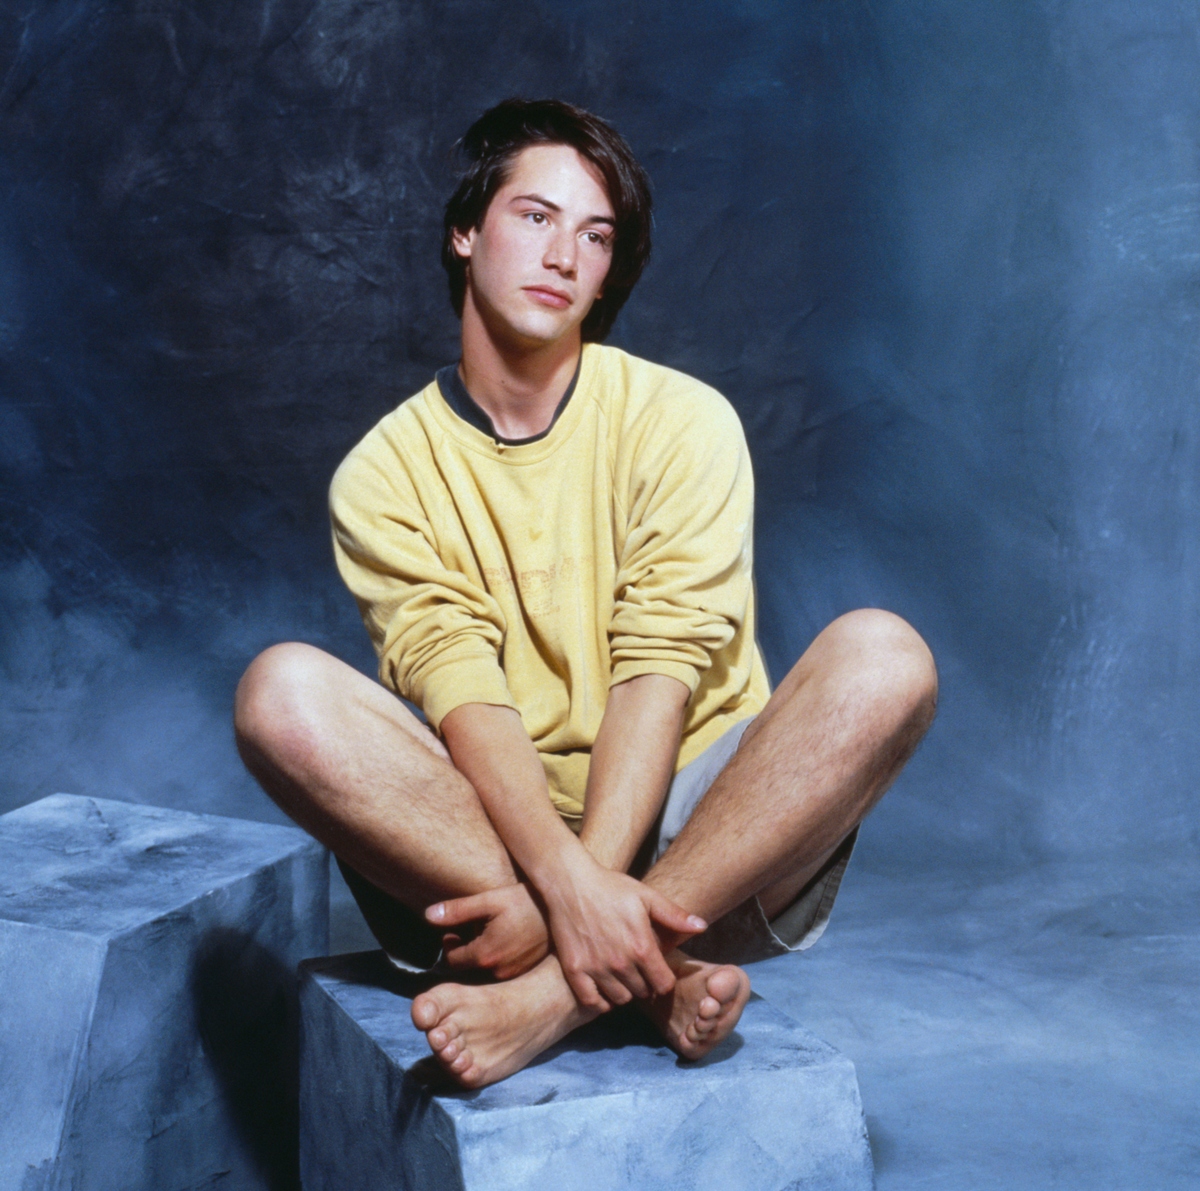 Keanu Reeves young glamour shots